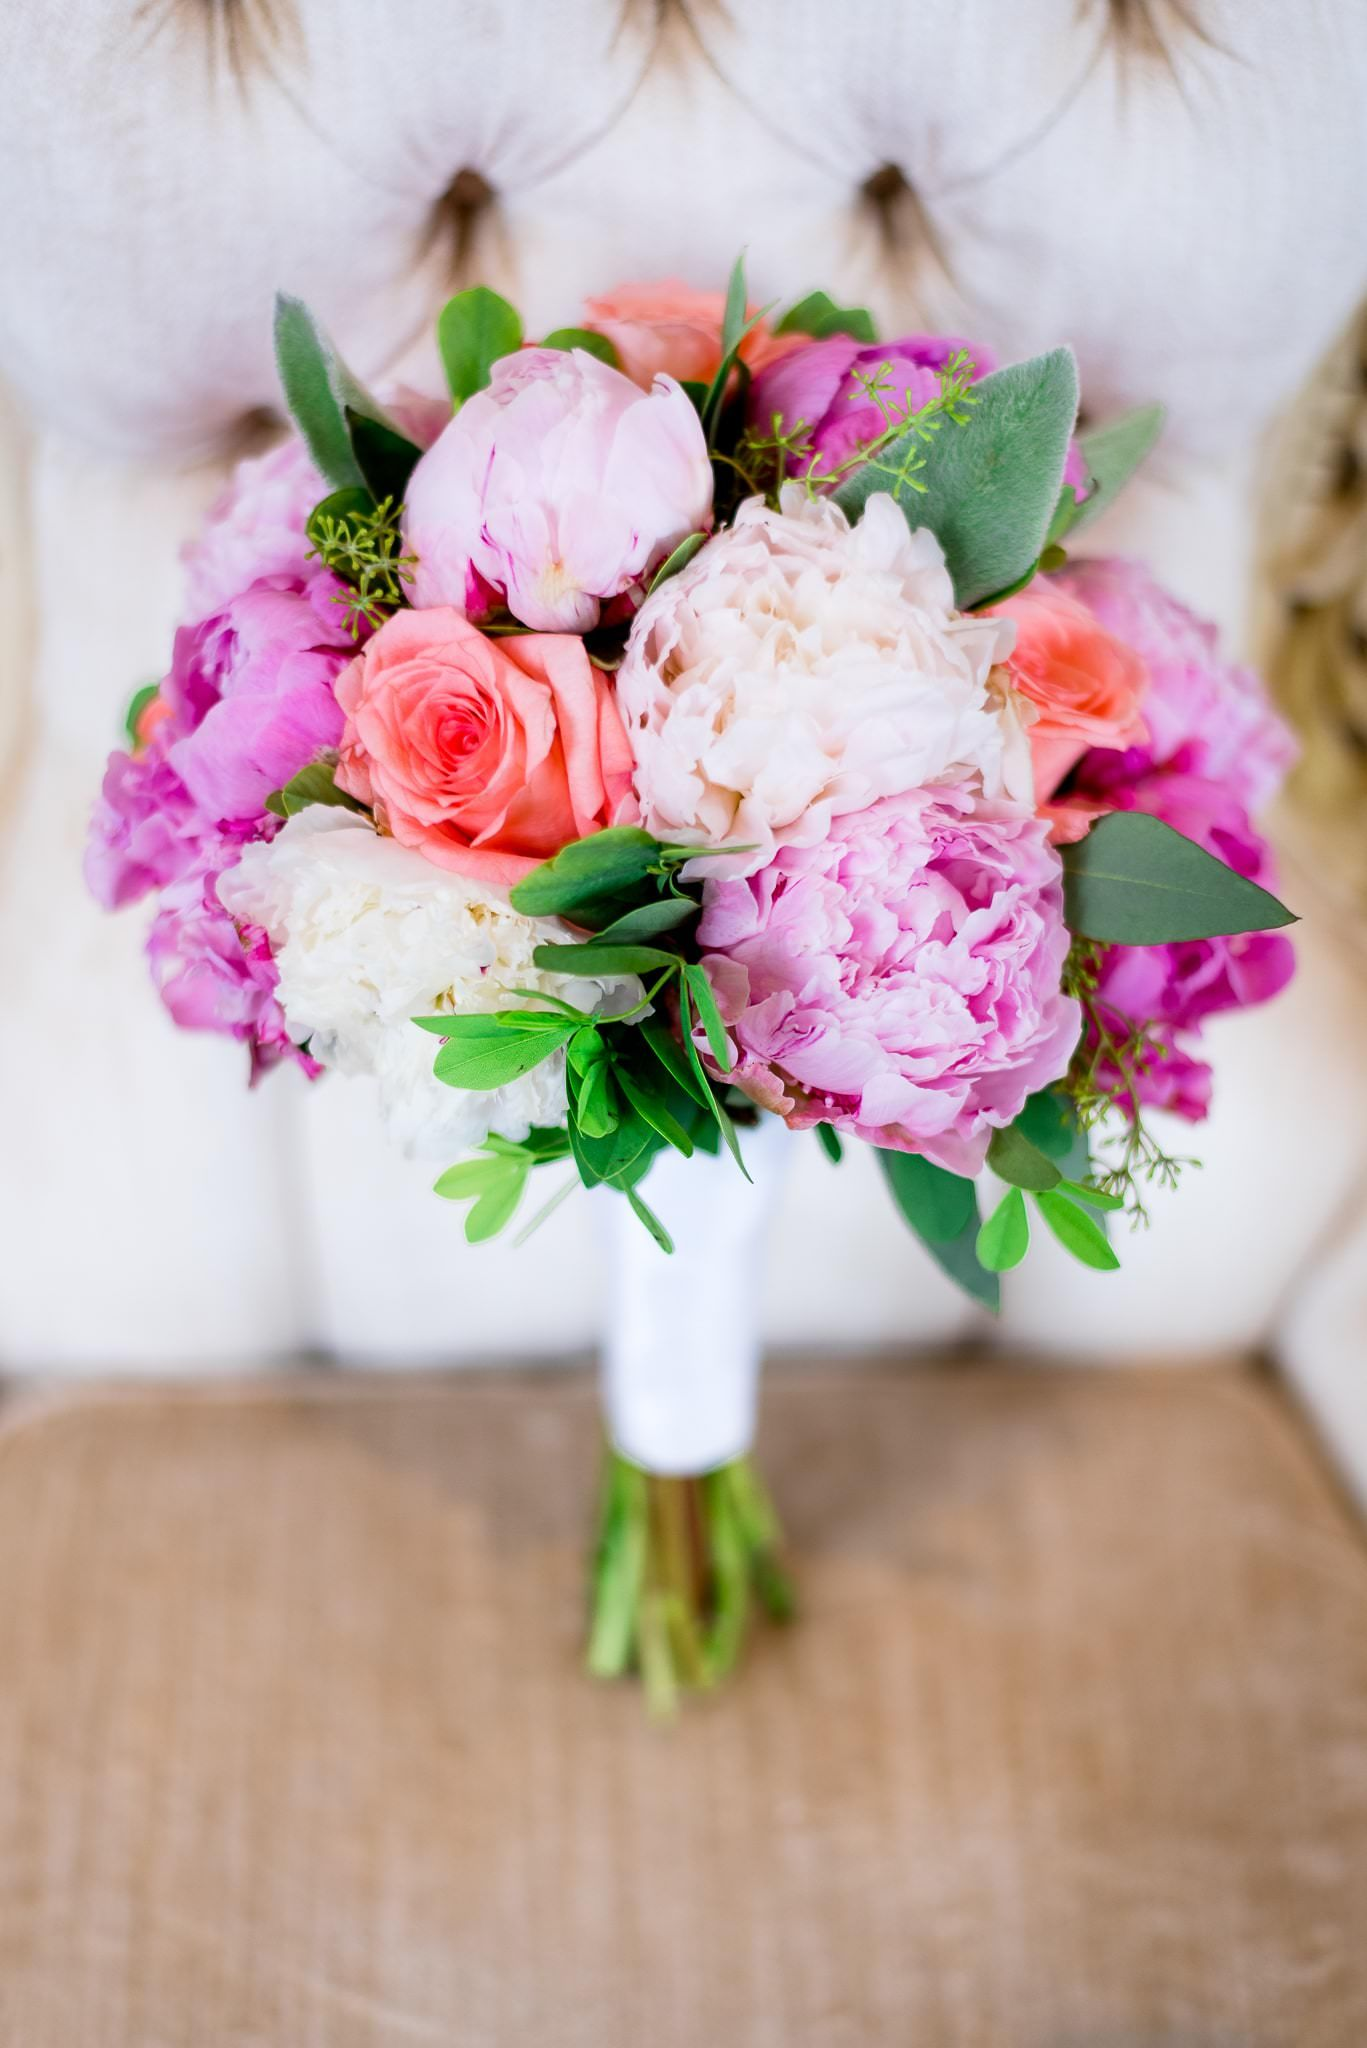 wedding bouquet with pink peonies and roses for a Chicago summer wedding